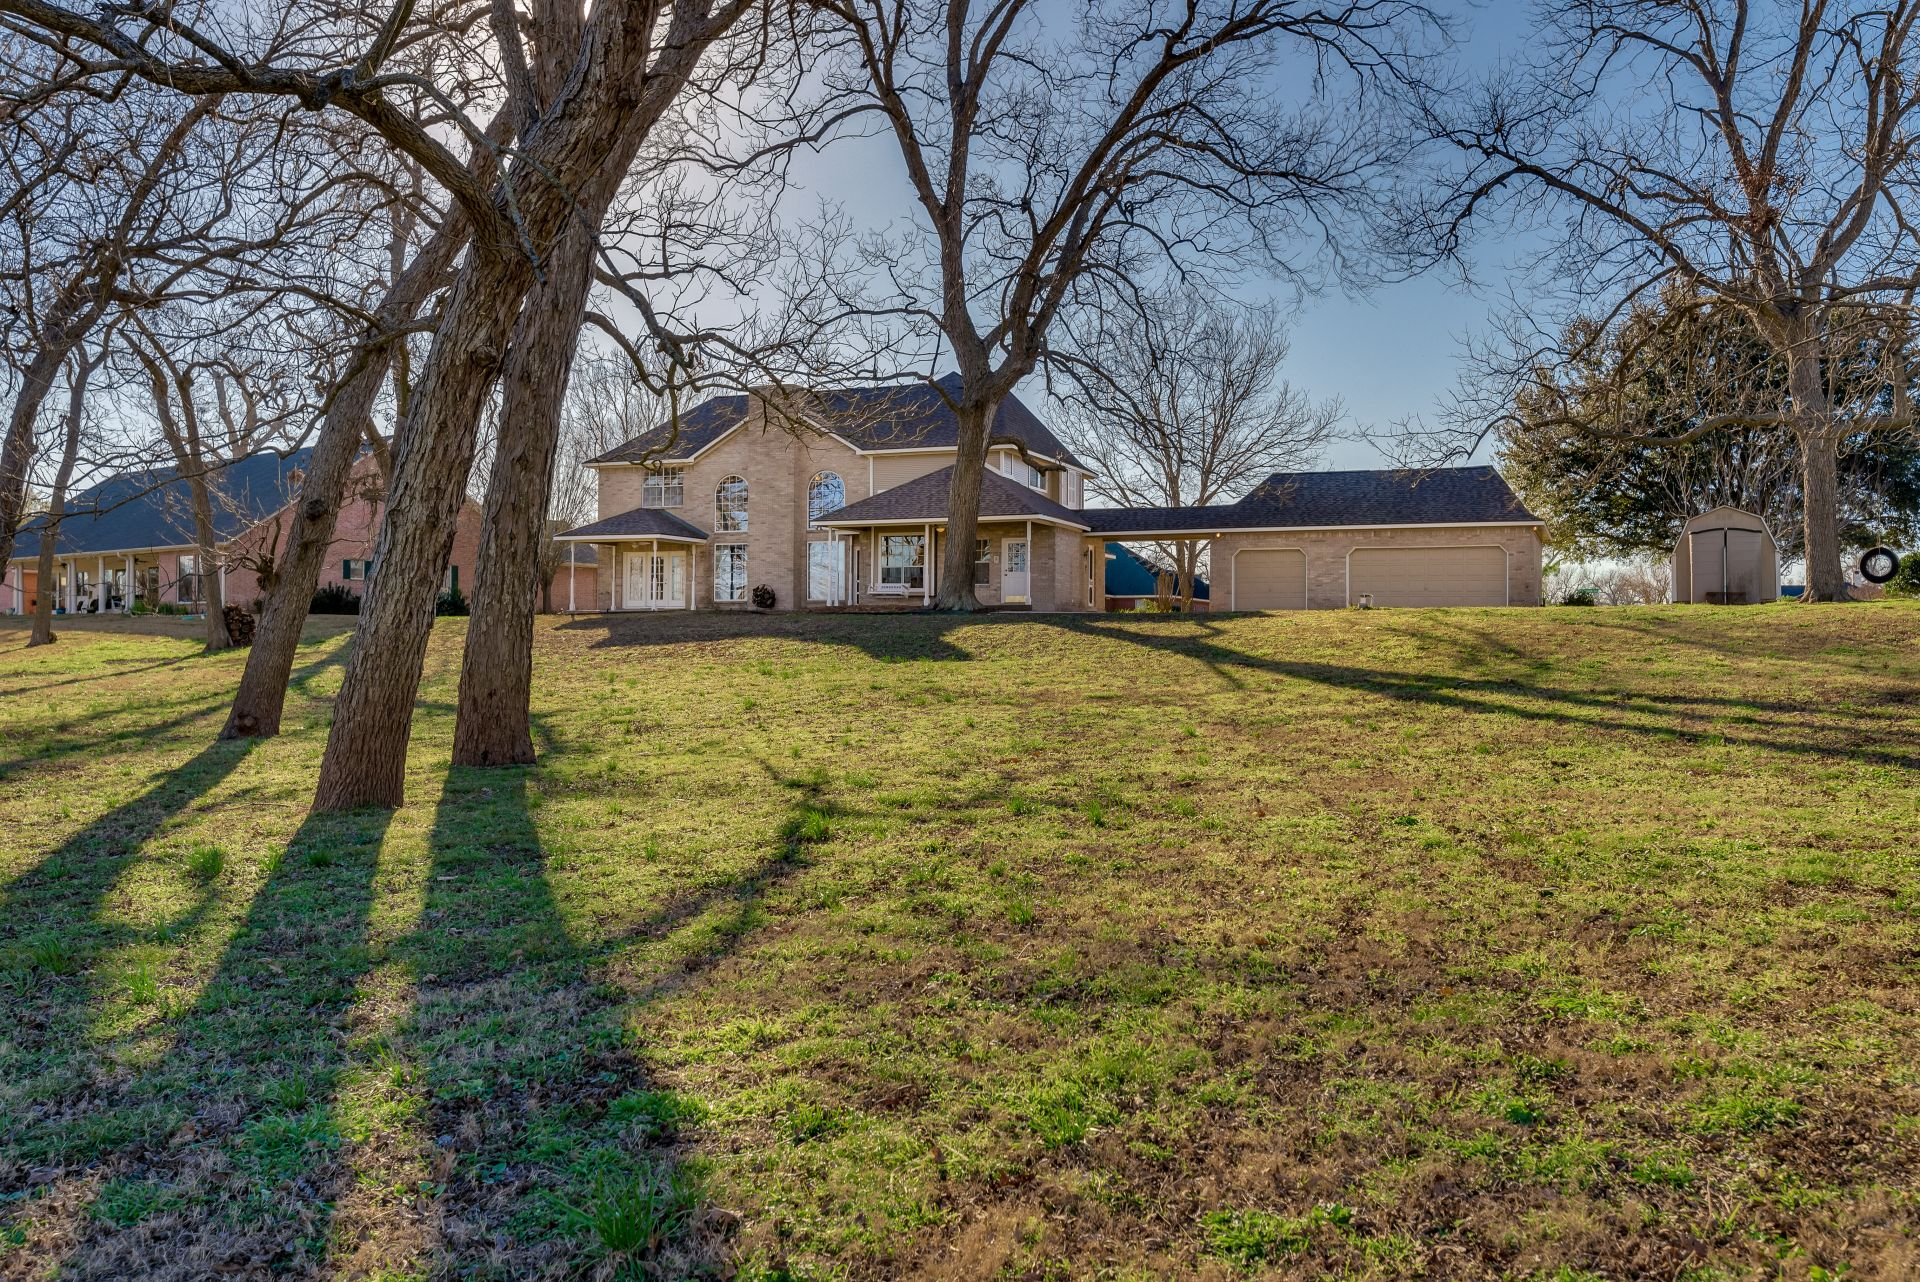 8002 Shamrock: Your Fixer Upper Dreams are Made Here